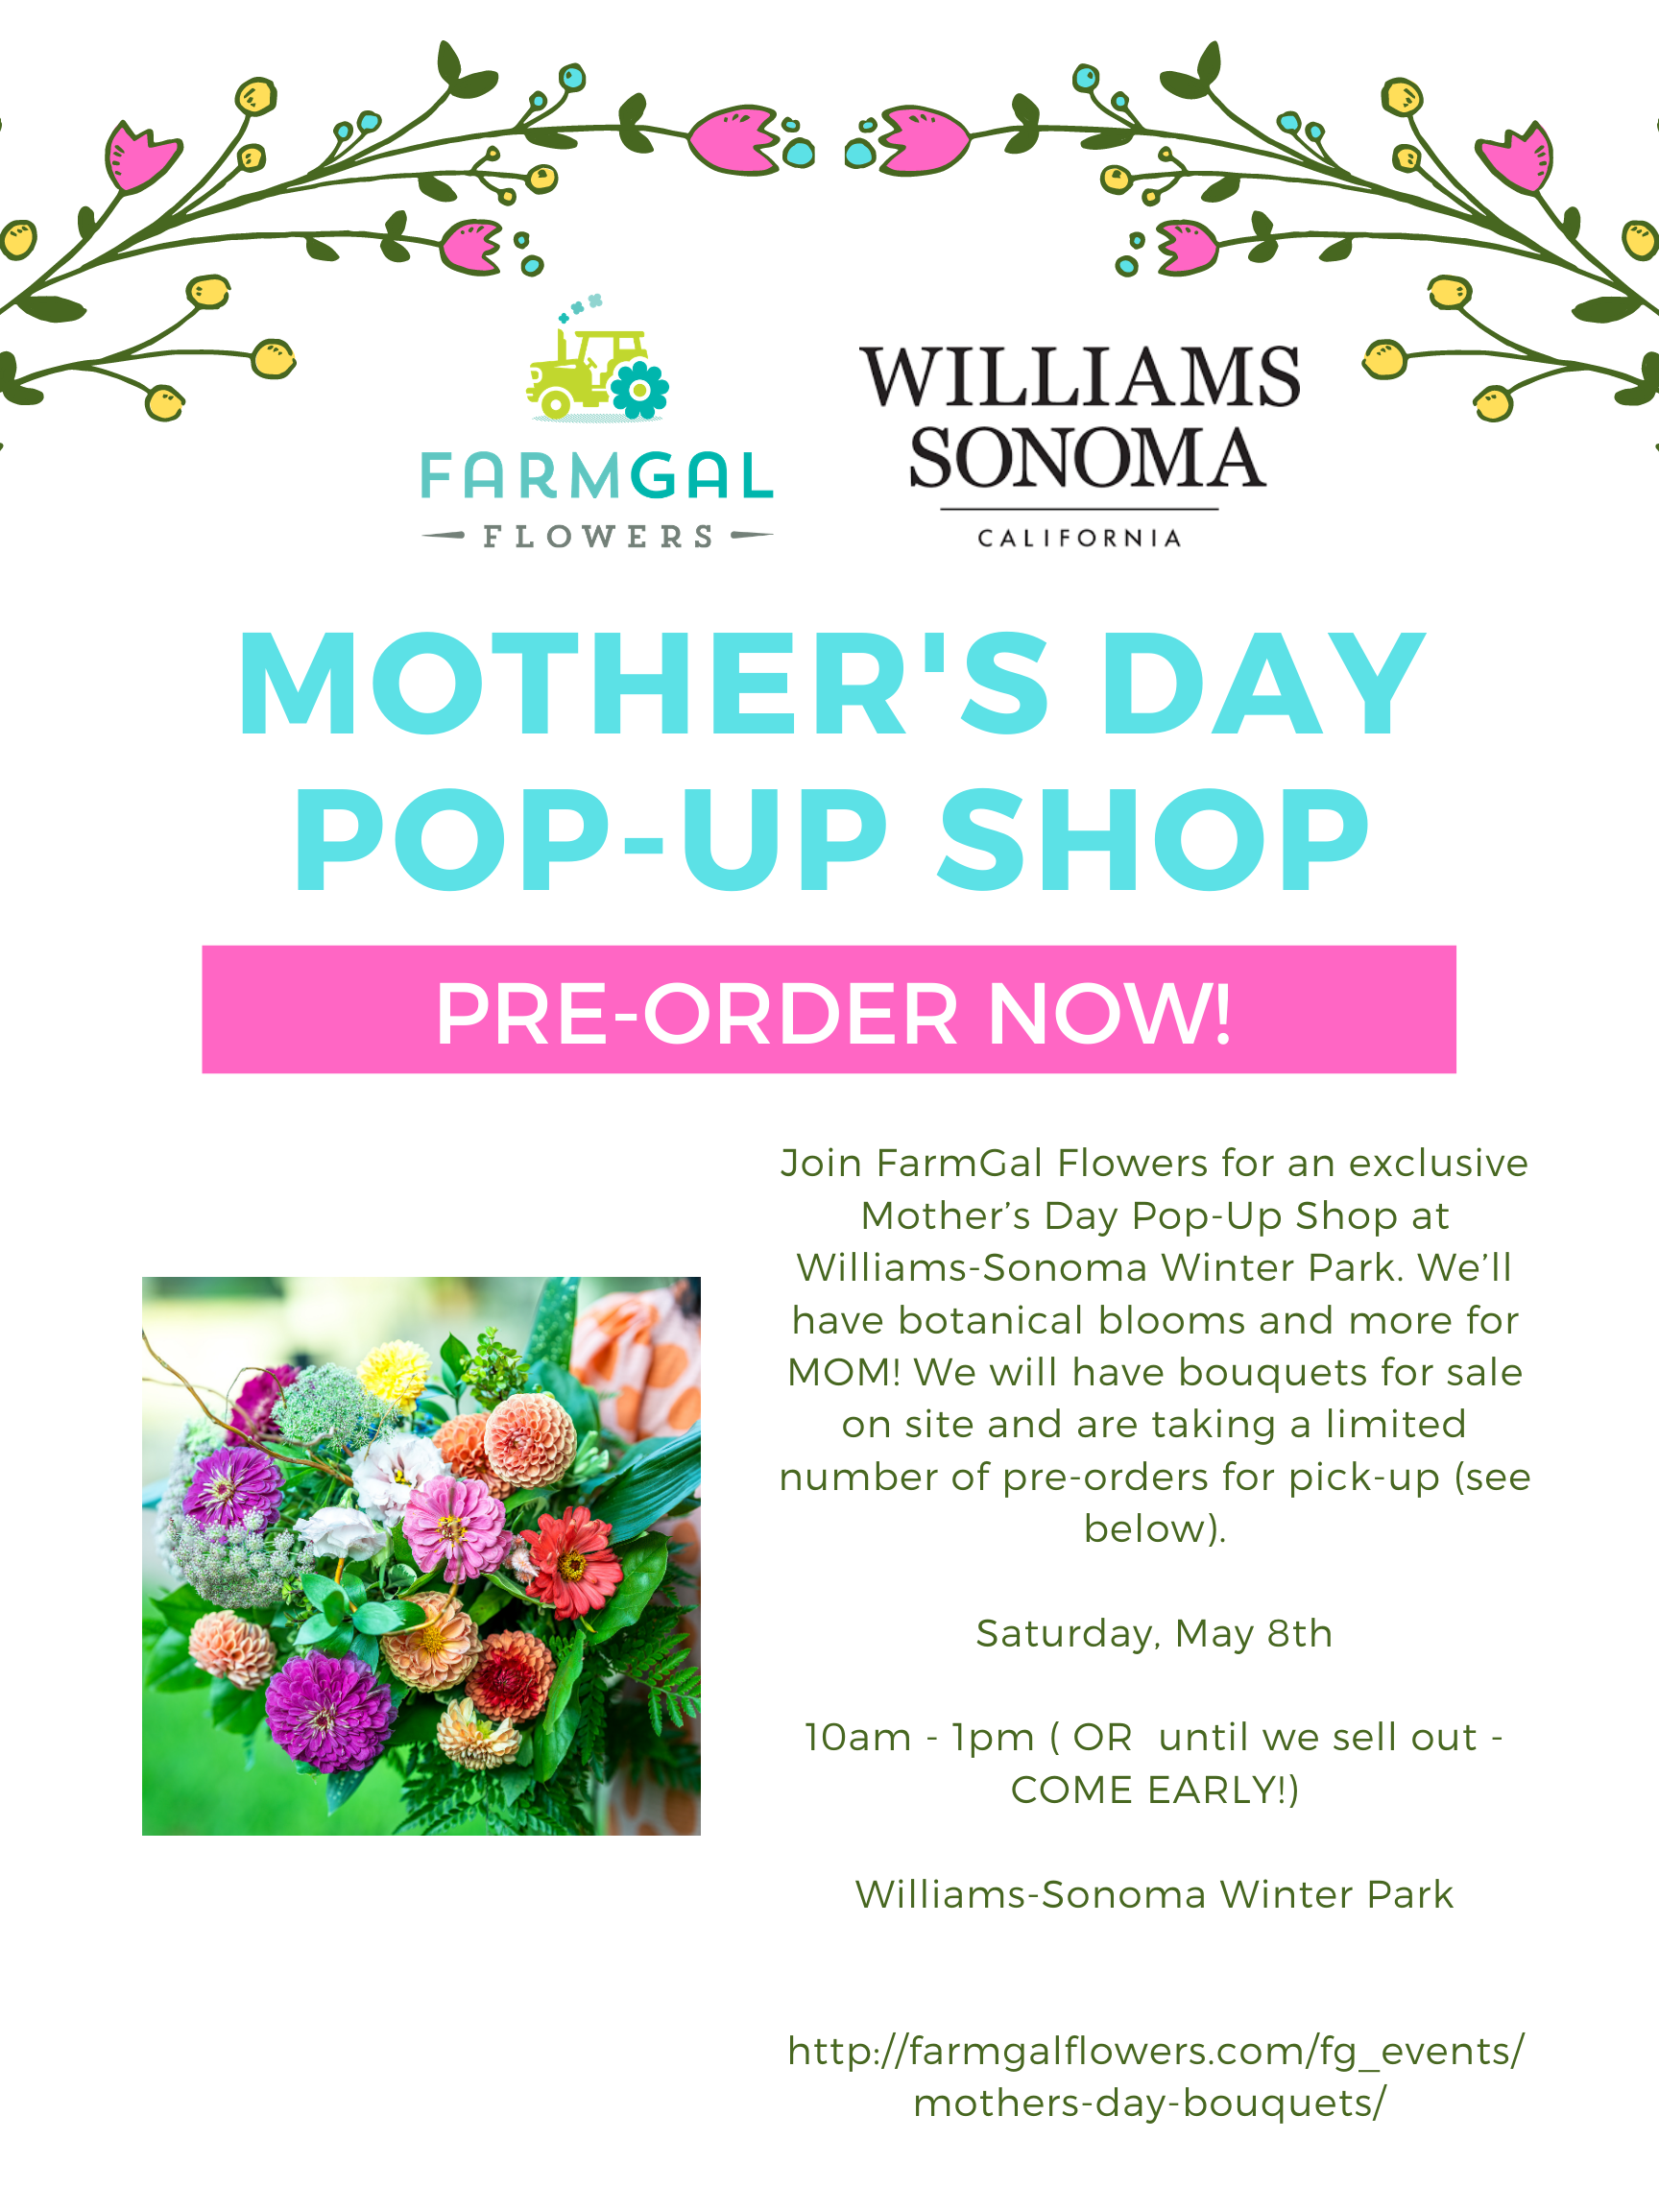 Mother's Day Bouquets with Williams-Sonoma Winter Park